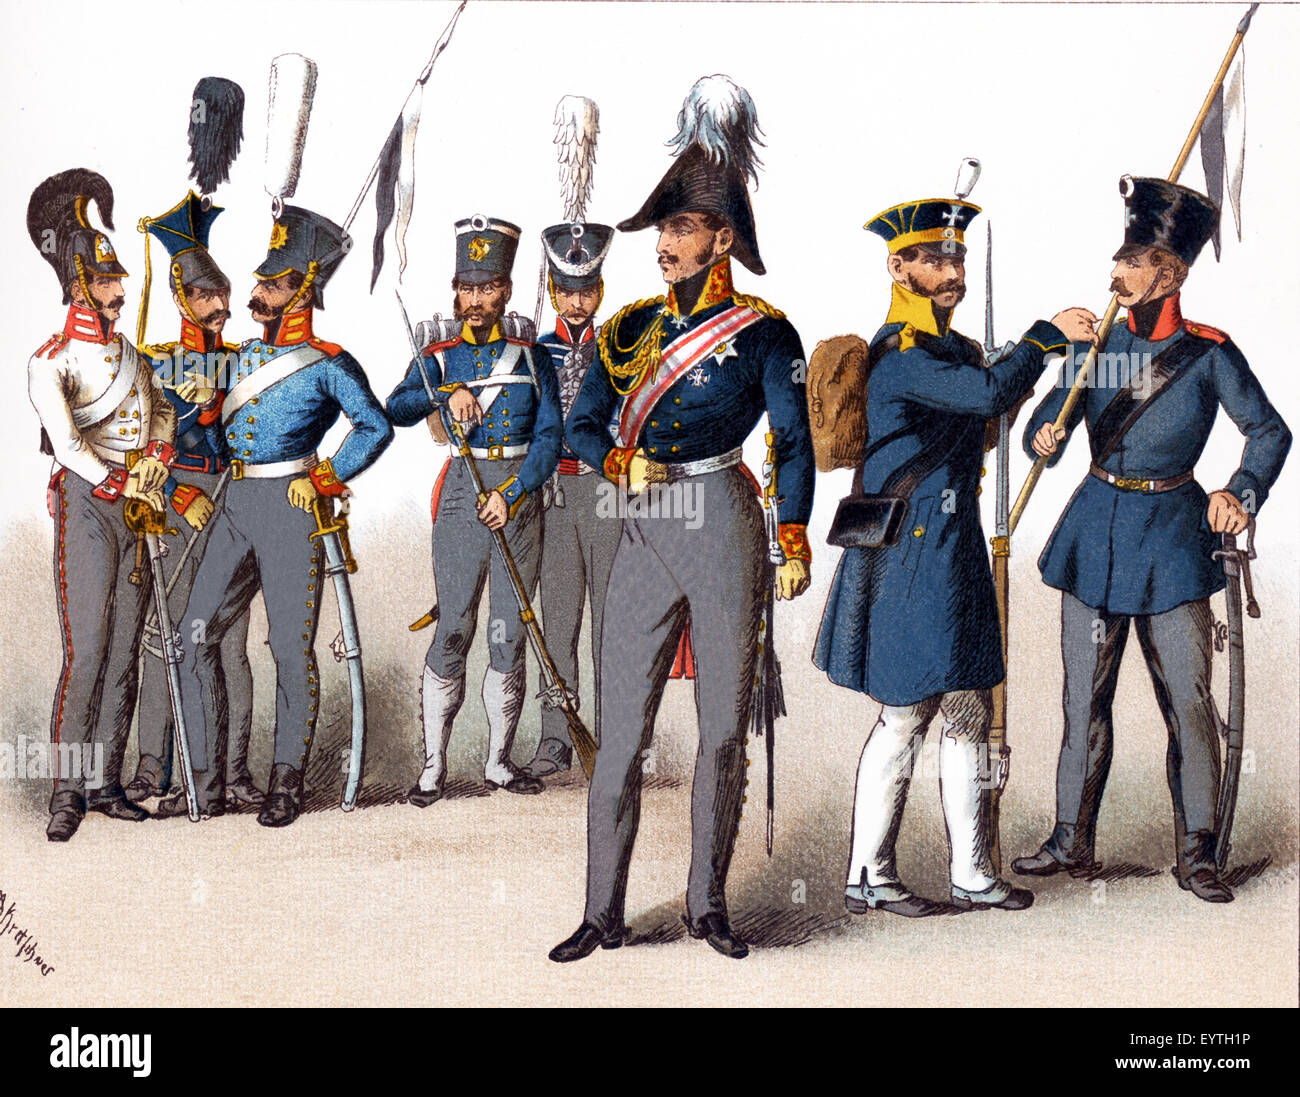 The figures pictured here represent Prussian military. From left to right, they are: Cuirassier 1814, Uhlan, Dragoon, - Stock Image